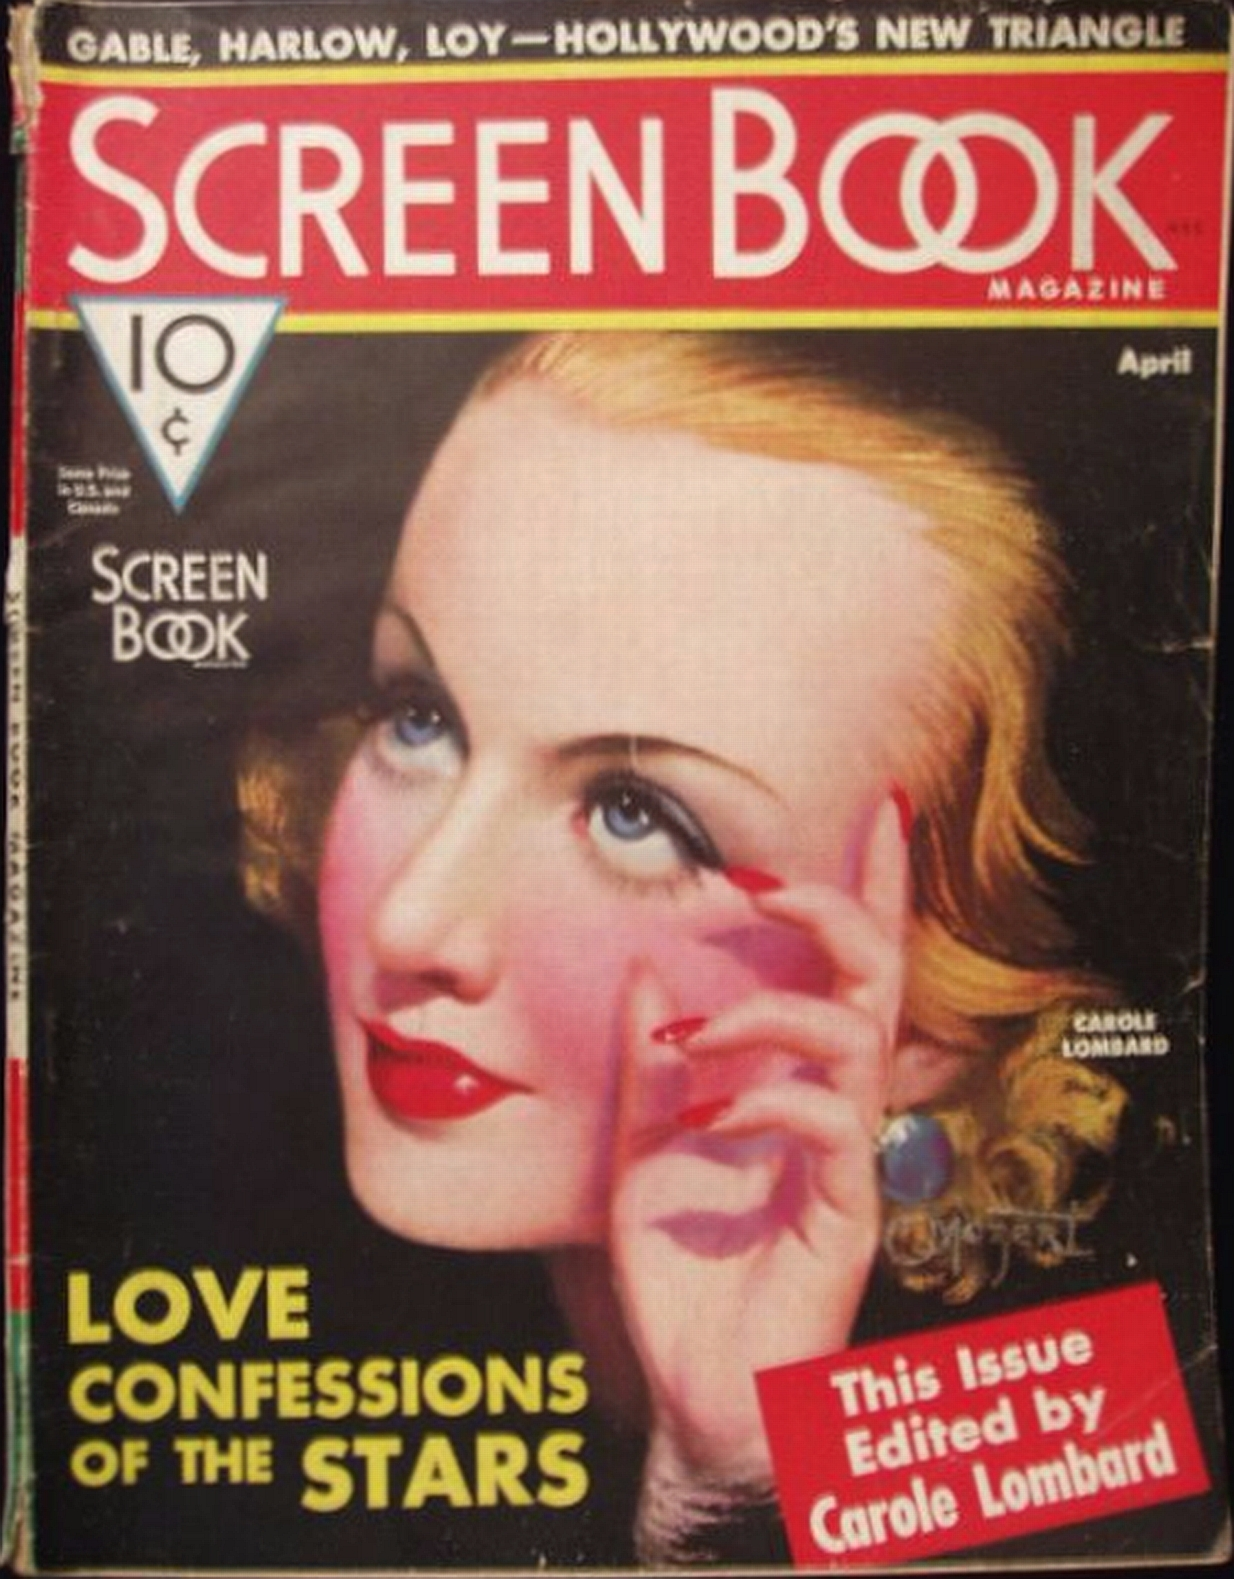 carole lombard screen book april 1936 larger